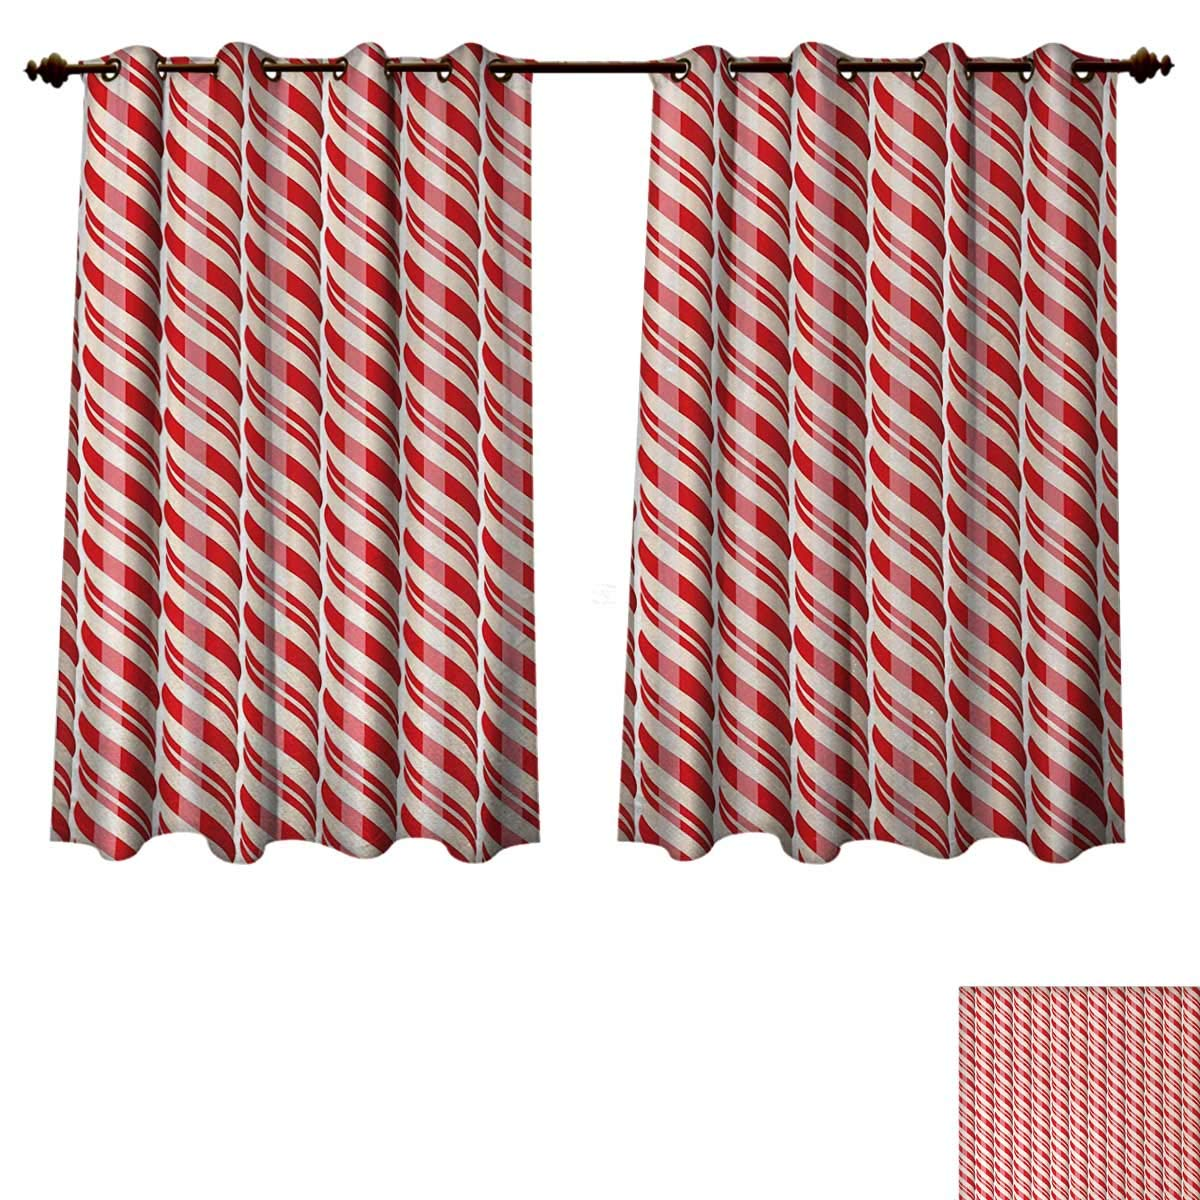 Anzhouqux Candy Cane Blackout Curtains Panels for Bedroom Red Christmas Candies Pattern with Diagonal Stripes Traditional Winter Sweets Decorative Curtains for Living Room Red Cream W55 x L72 inch